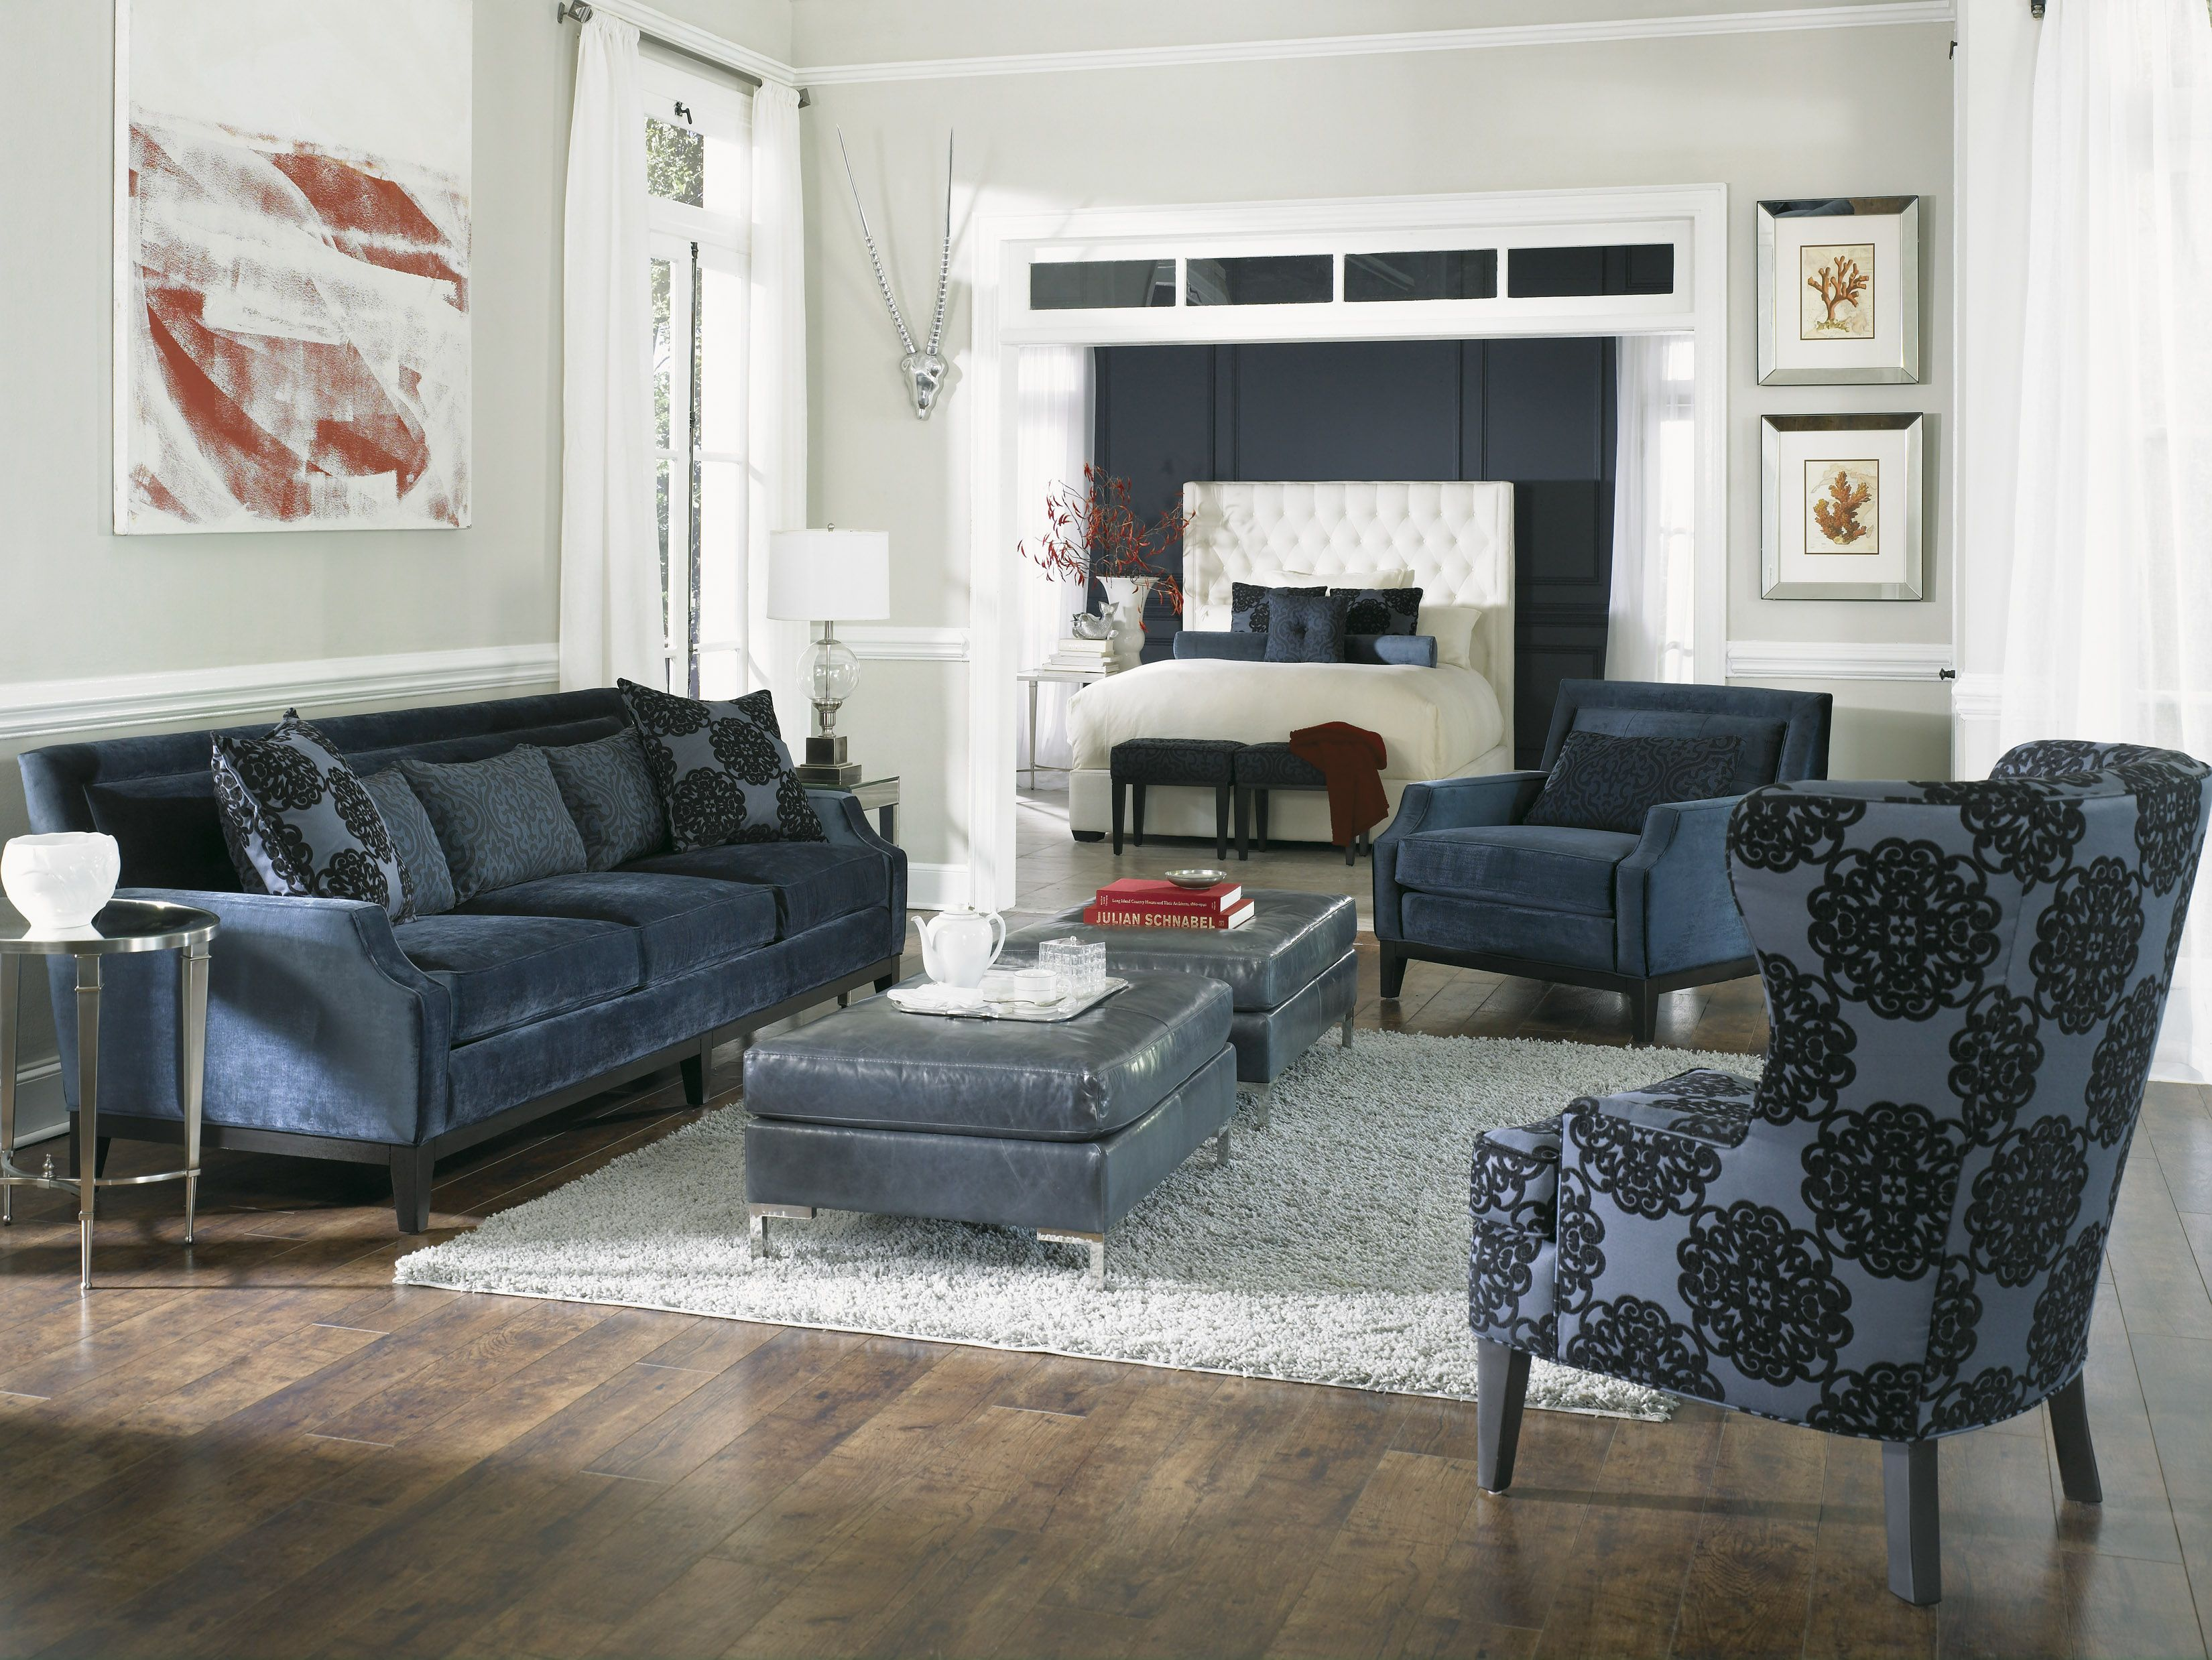 Sofas In Columbus Ohio Triangle Sofa Legs 'rossdale'. Sofa, Loveseat, Chair & Ottoman. Accent Chairs ...